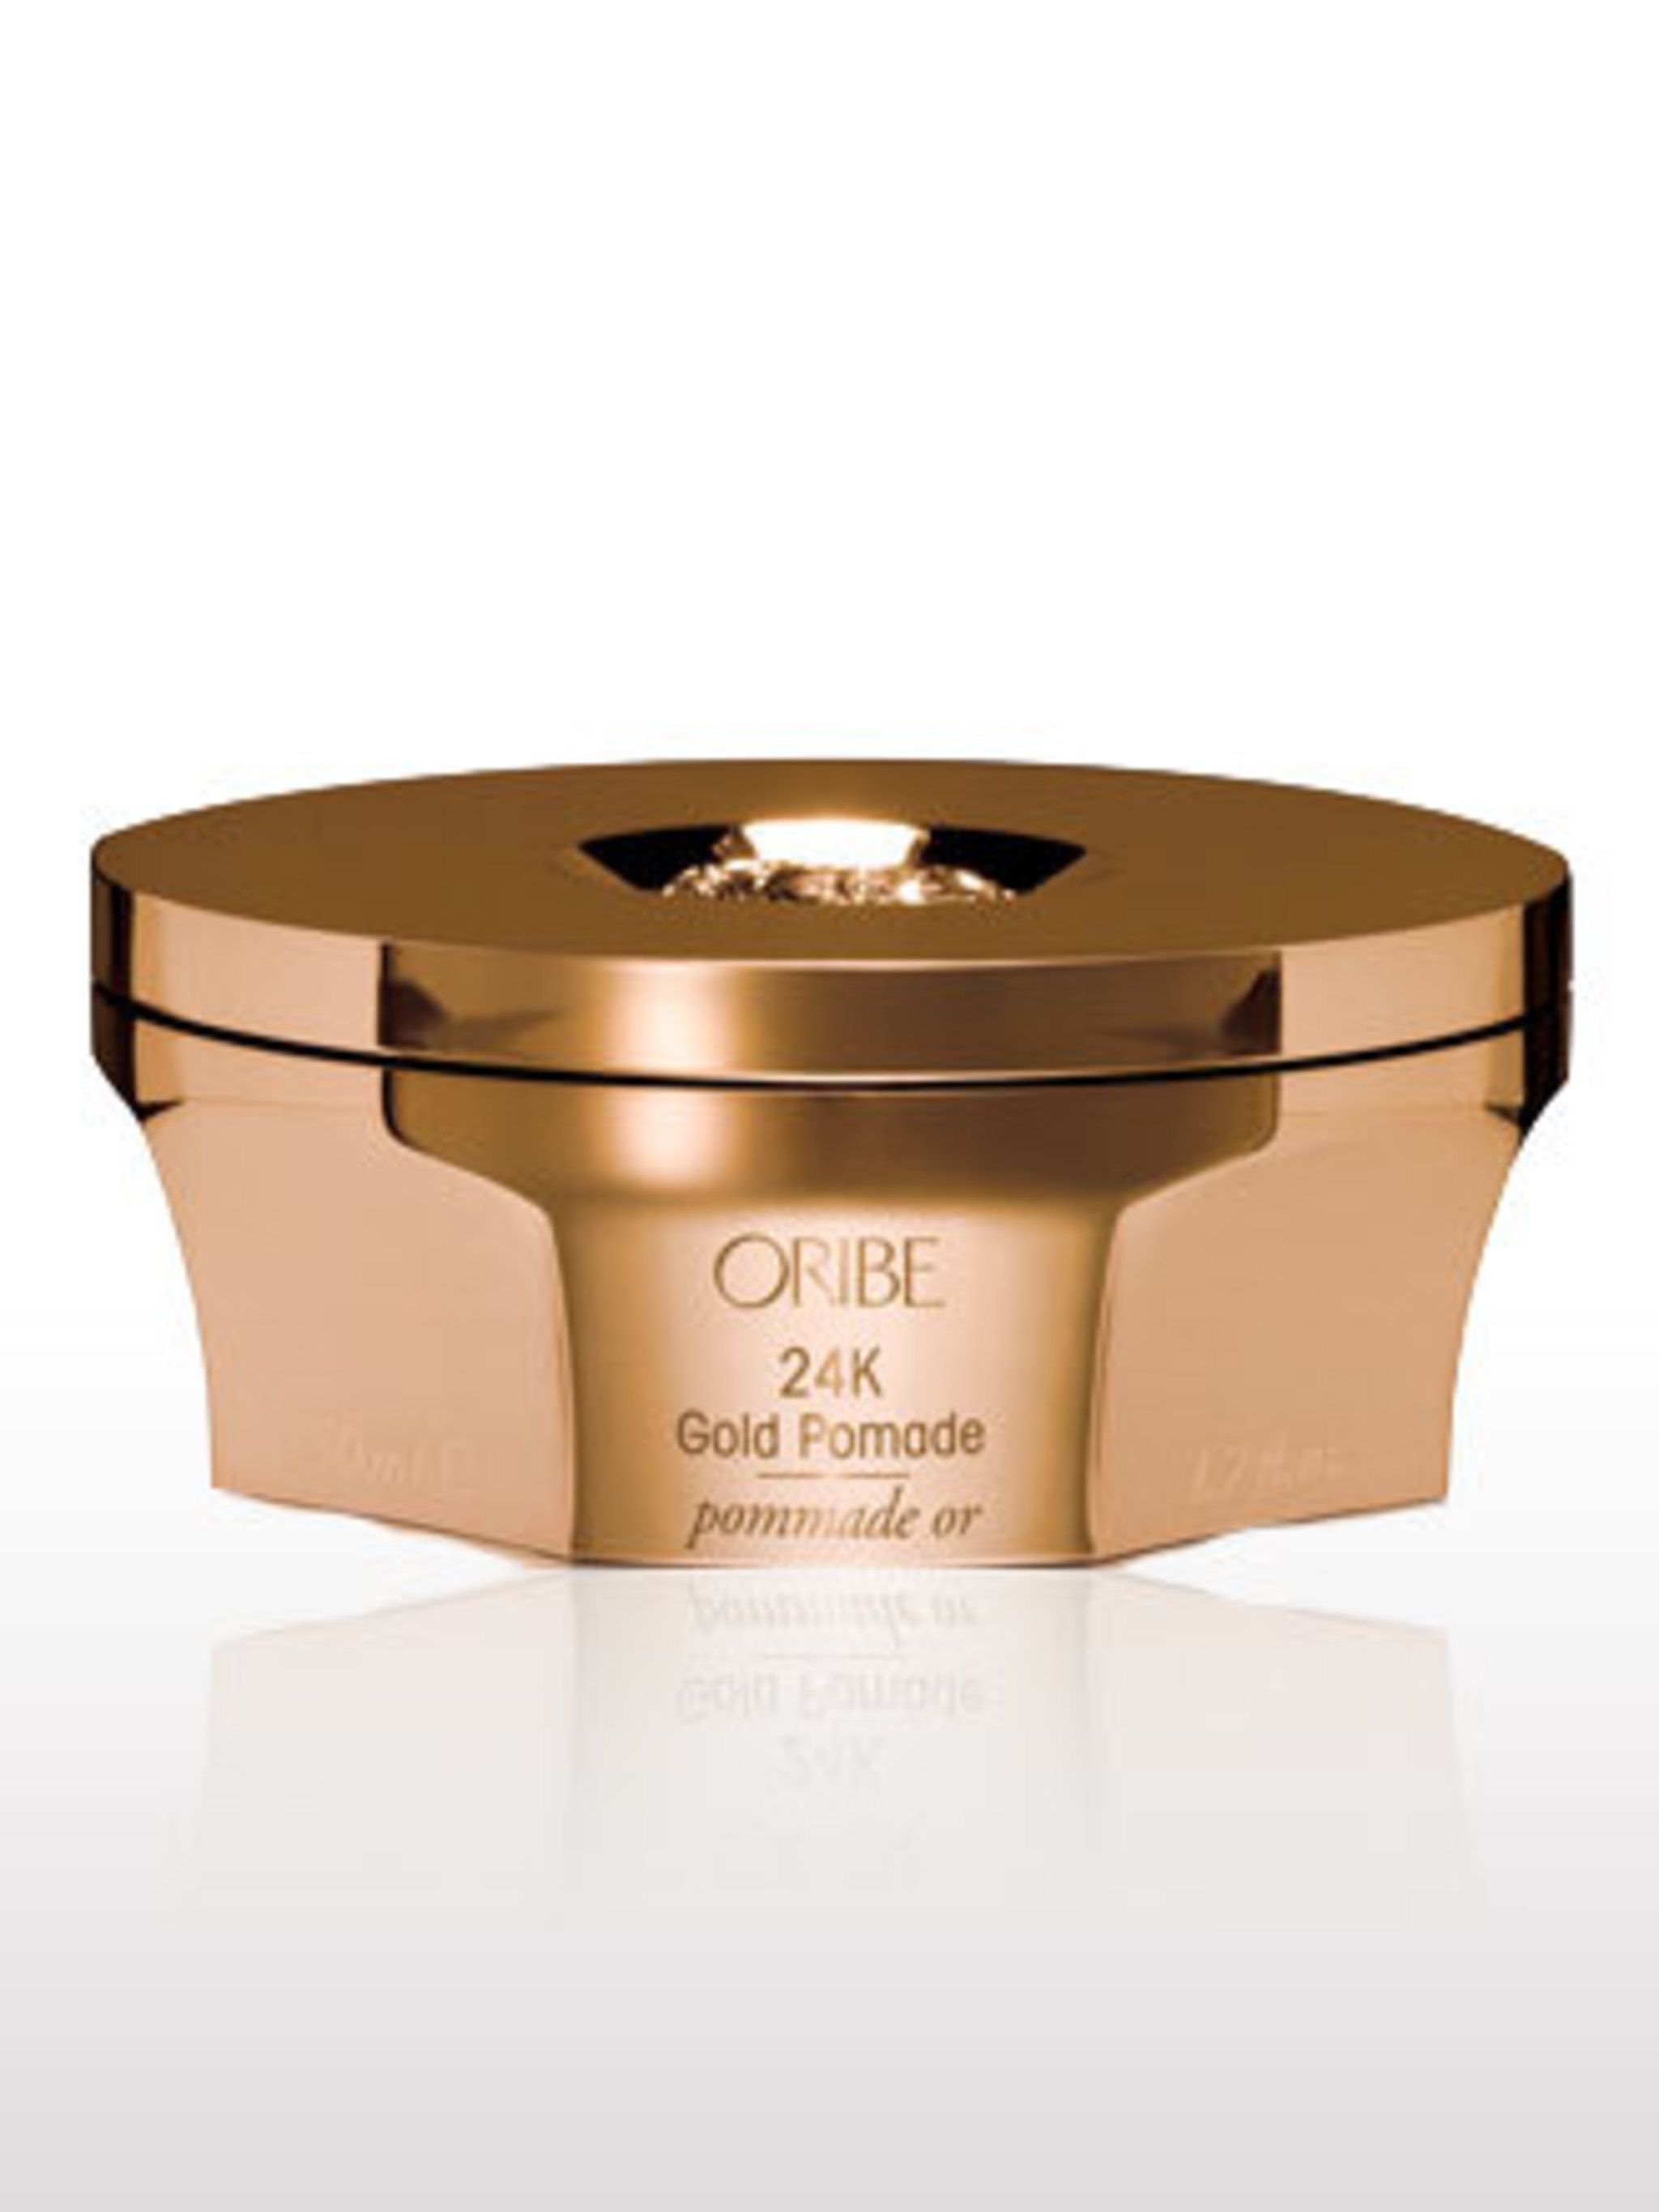 <p>Having worked with everyone from Karl Lagerfeld to Diana Ross, Oribe is a legendary hairdresser. Our favourite product from his new range at Space NK? This gold pomade, it gives you glossy, glimmering Hollywood hair in an instant.</p><p>24K Gold Pomade